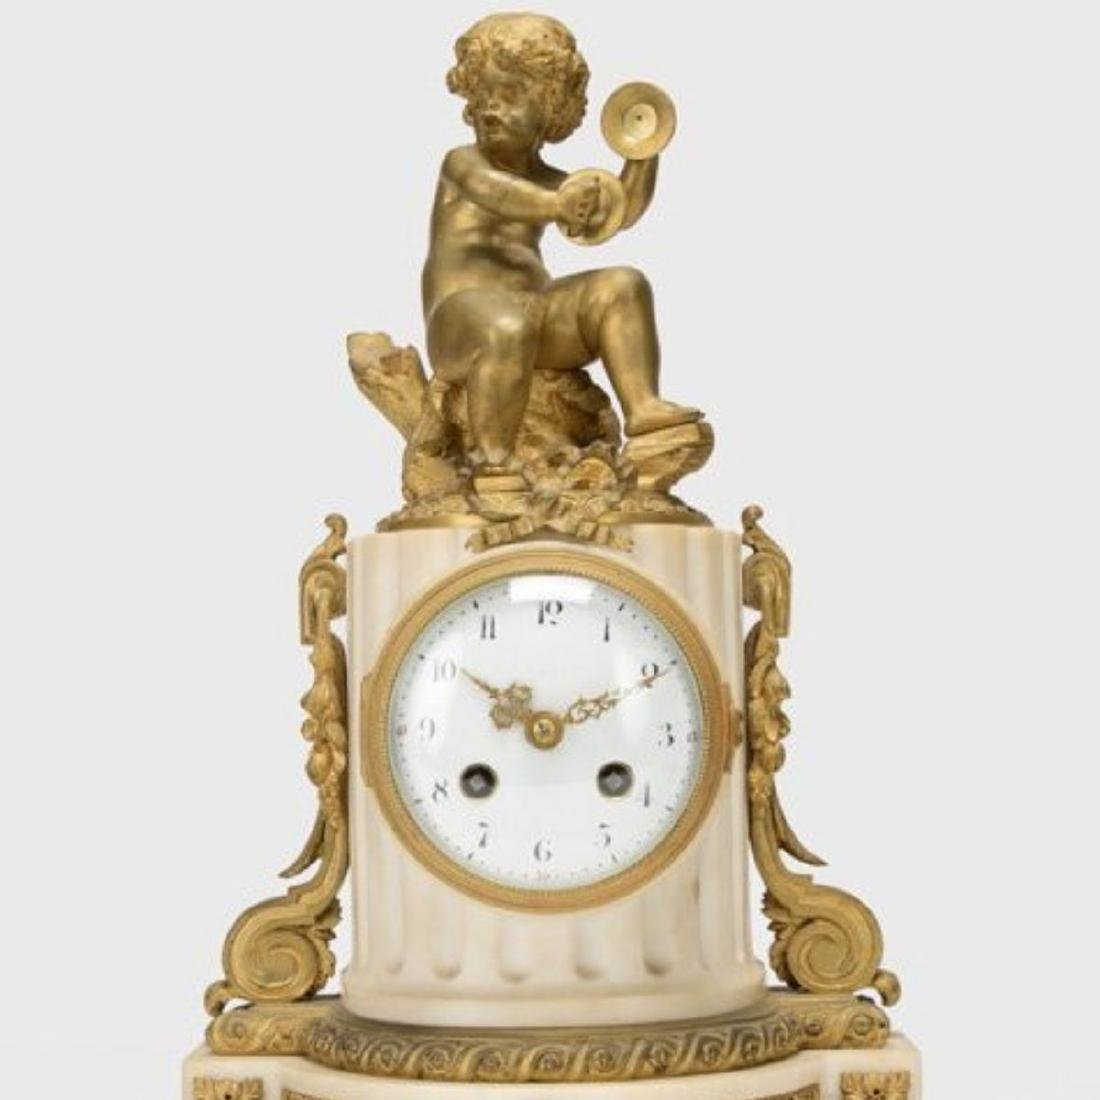 LOUIS XVI STYLE GILT BRONZE MOUNTED MANTEL CLOCK